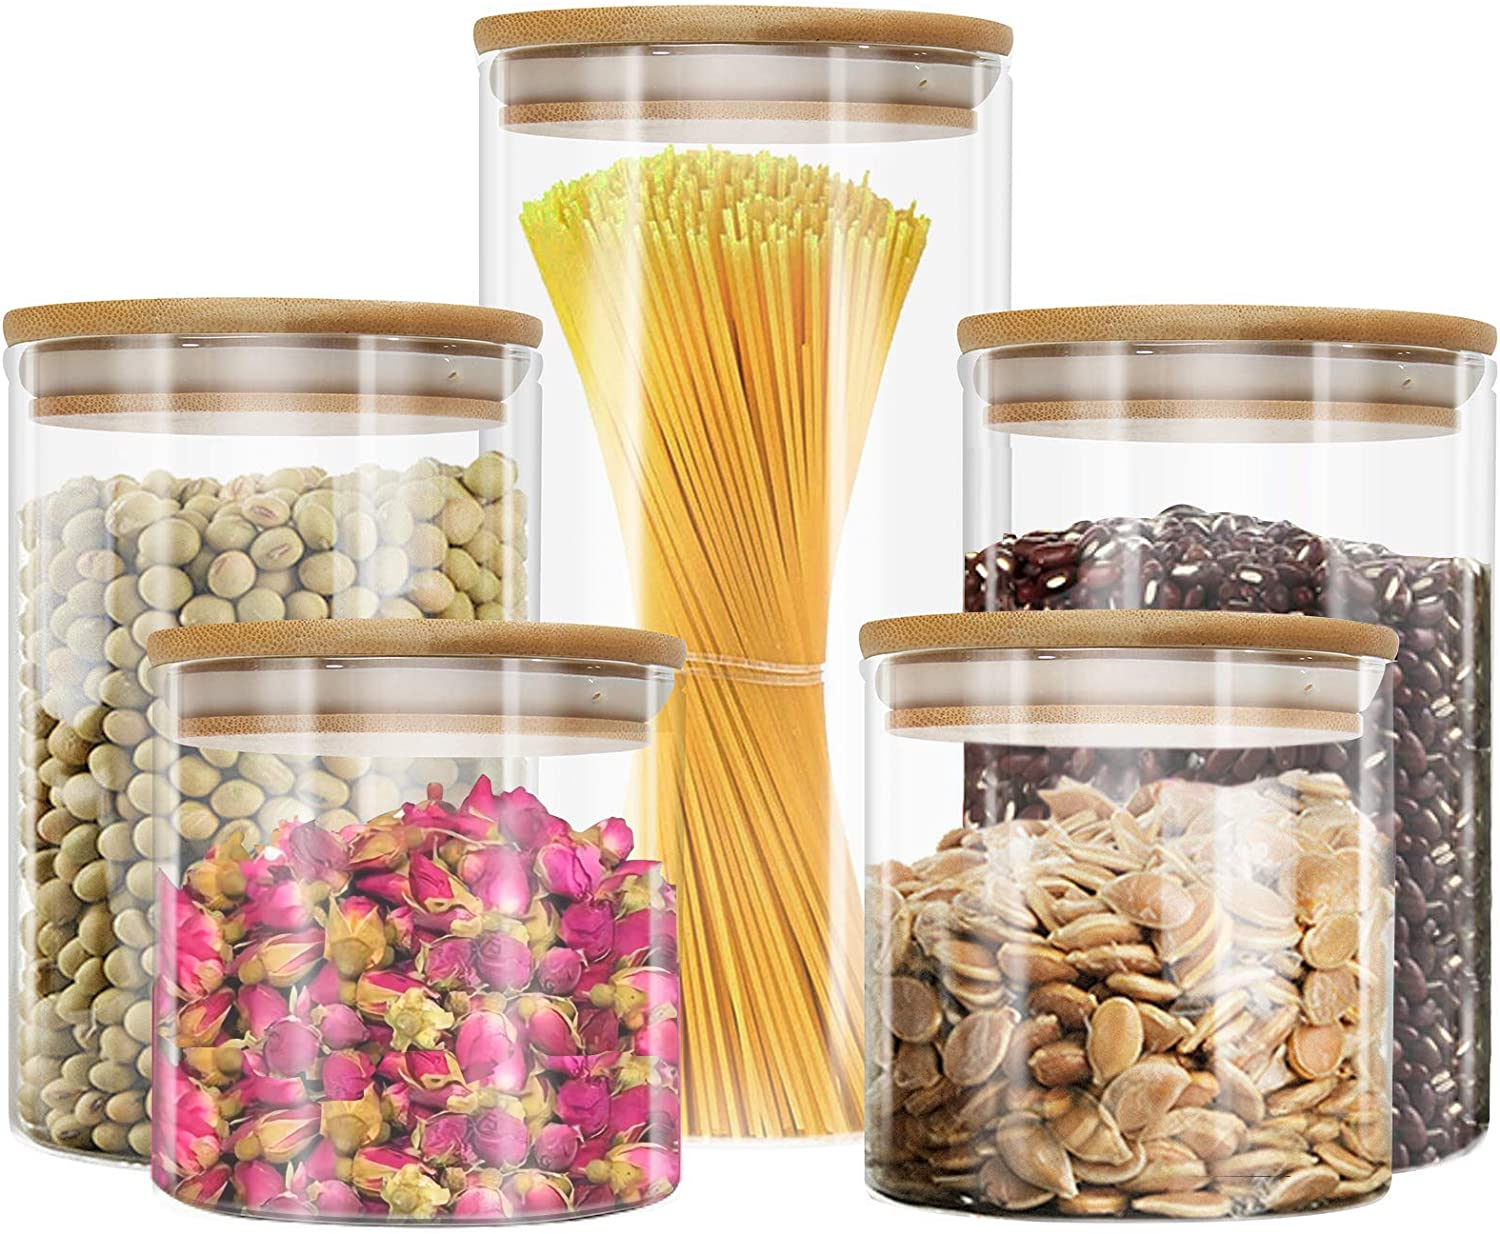 Liuruiyu Glass Food Storage Jars Set of 5,Glass Storage Containers Clear Glass Food Canister with Bamboo Lid Airtight For Serving Tea, Coffee, Flour, Sugar, Candy, Cookie, Spice and More